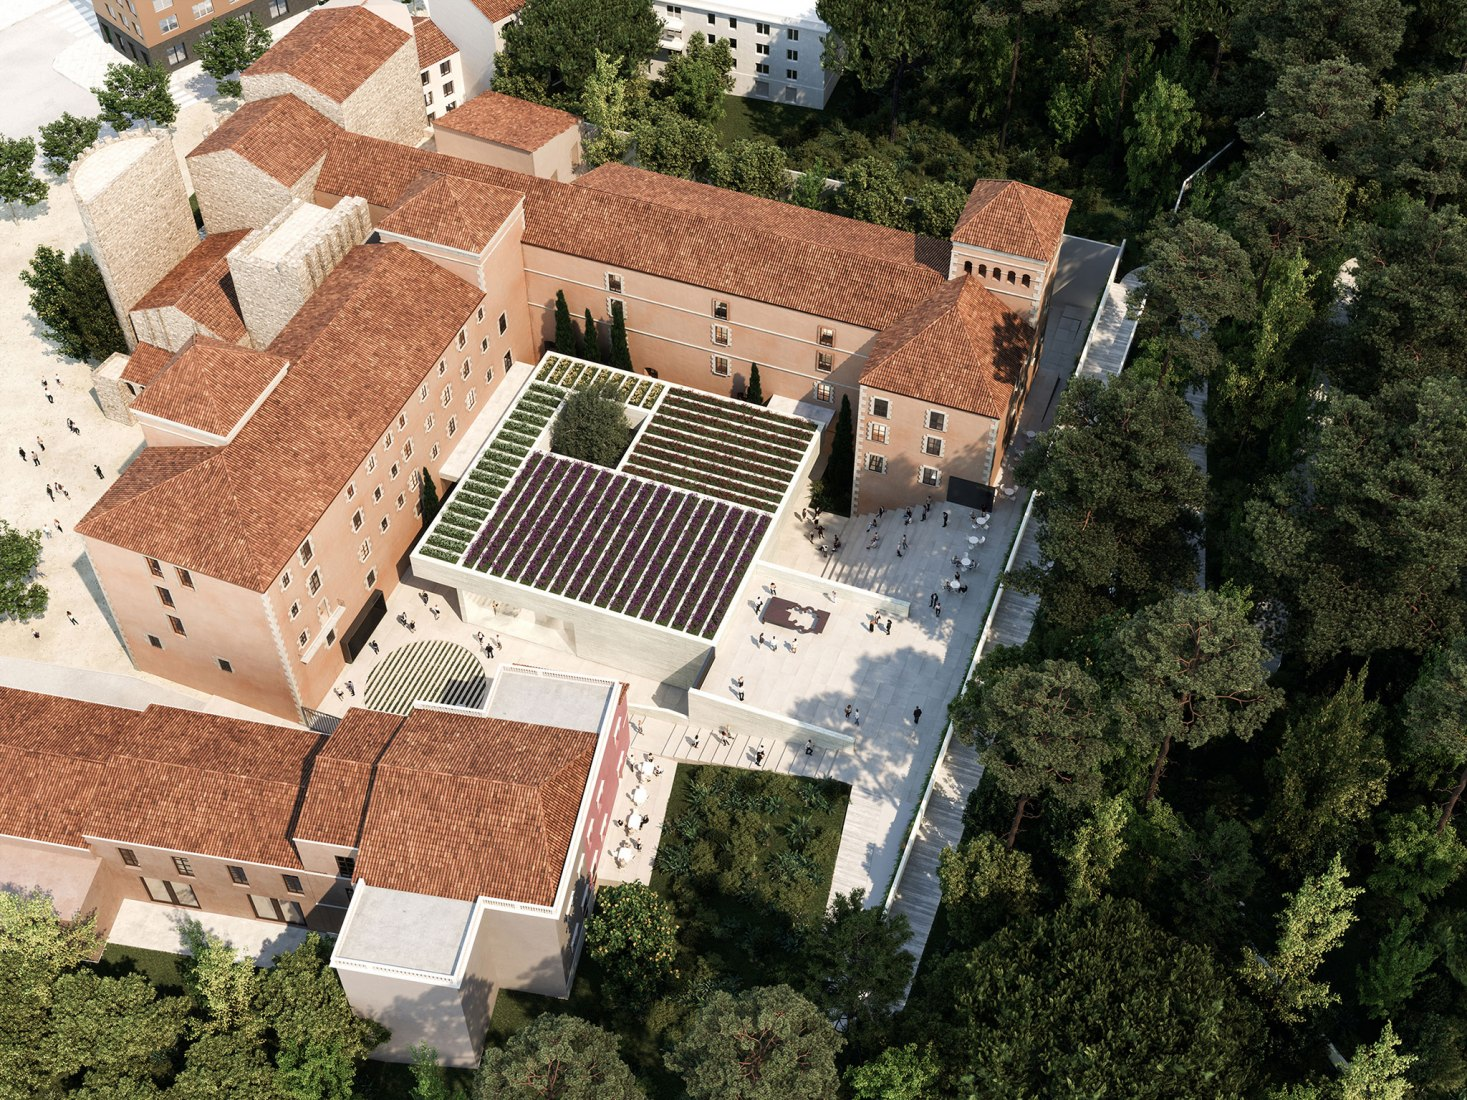 Overview. Museo Carmen Thyssen SFG. Image by Nieto Sobejano Arquitectos